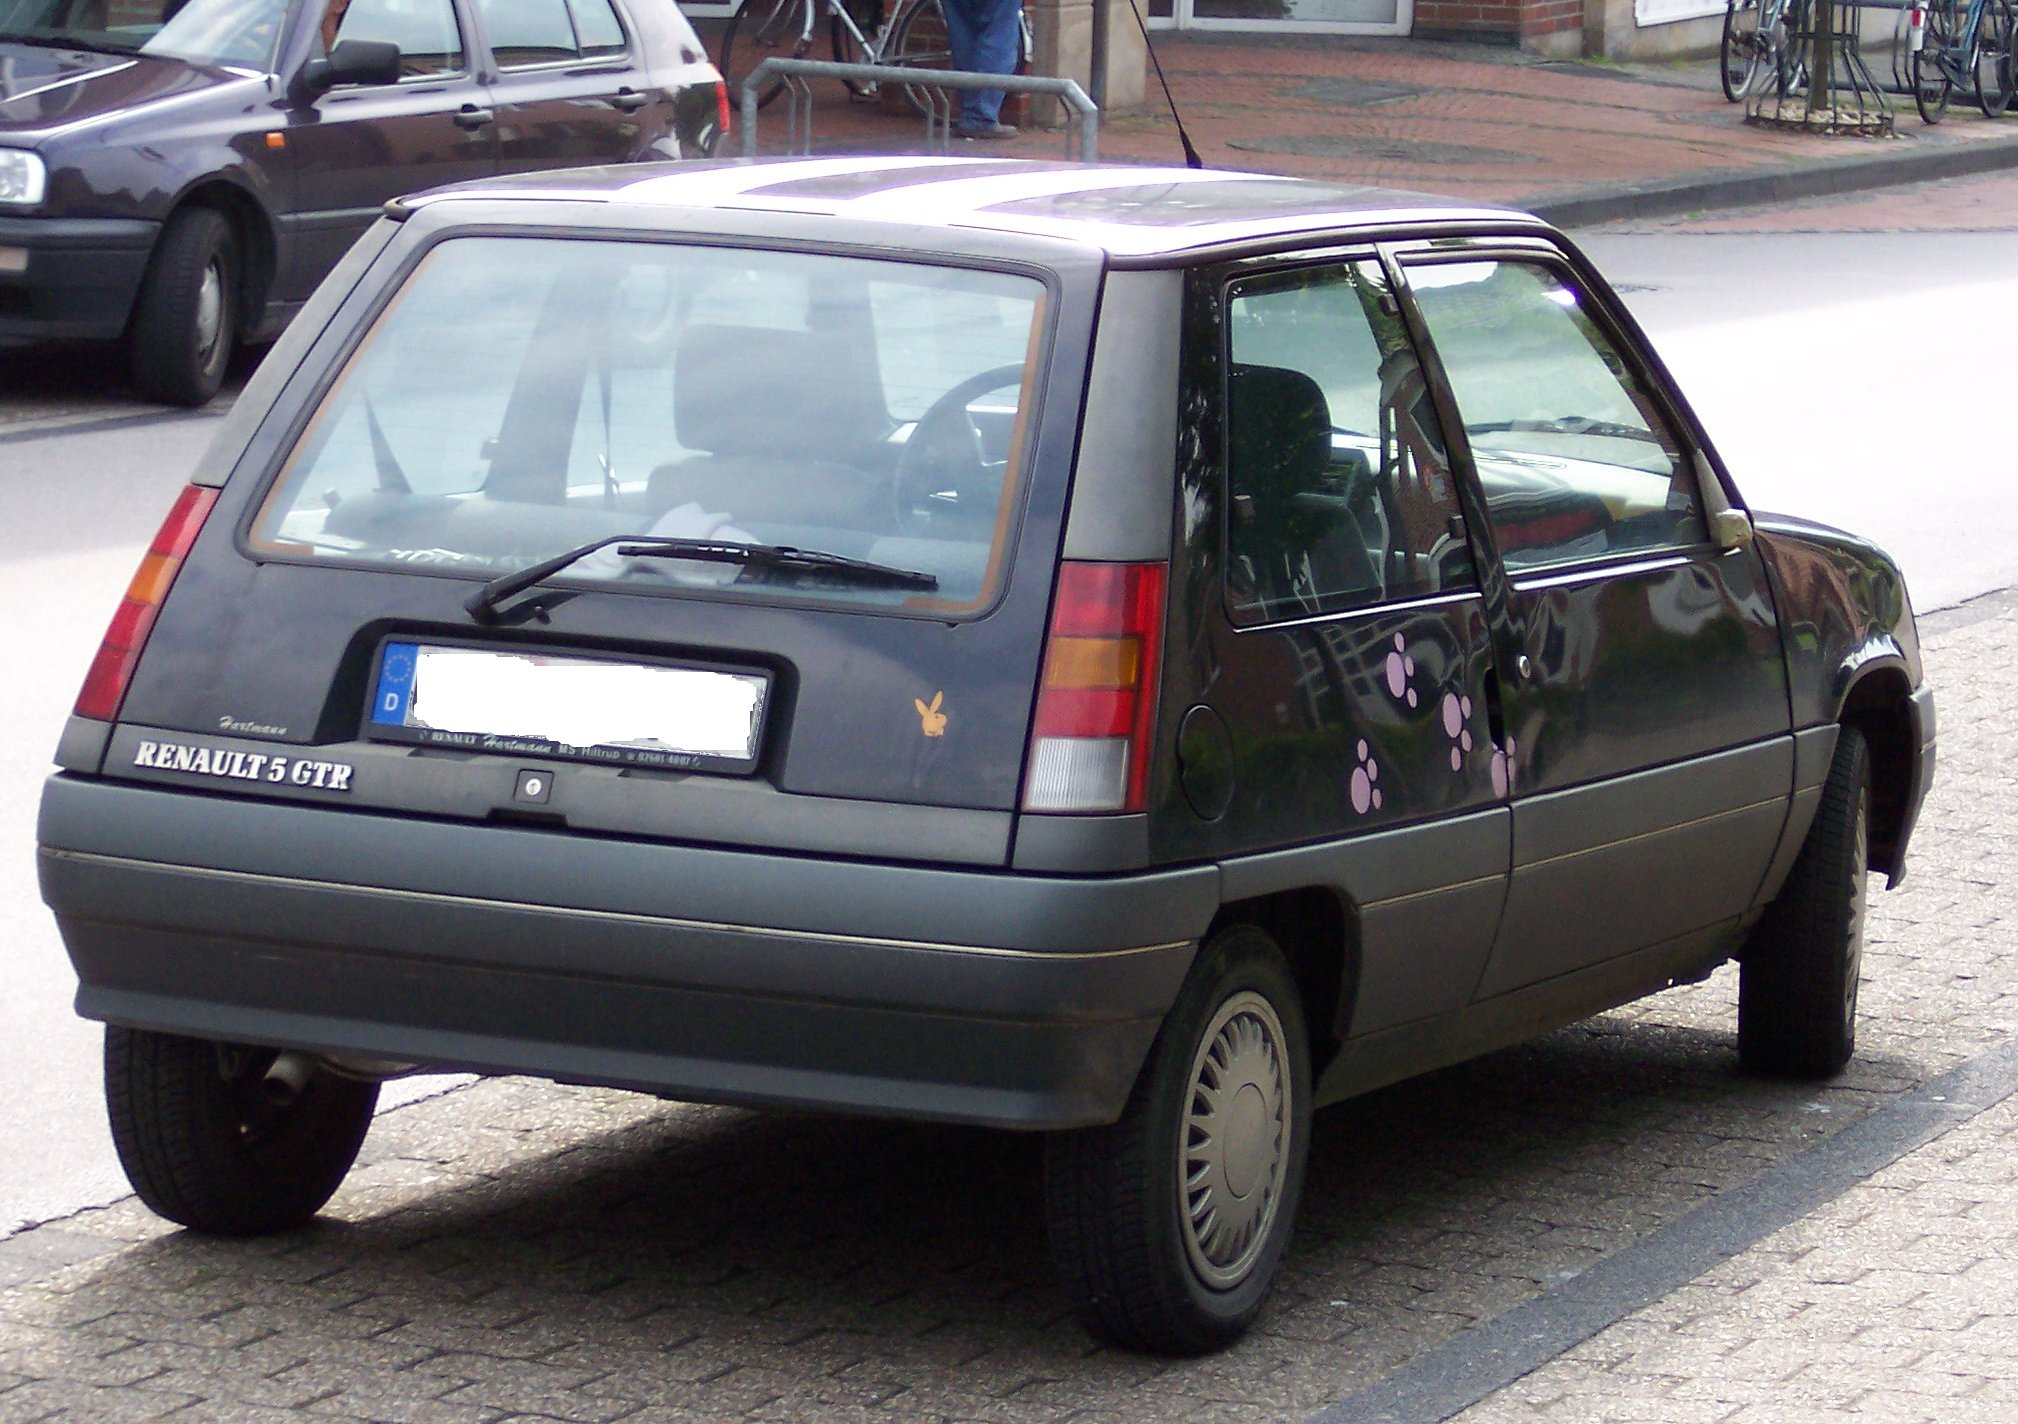 Renault r photo - 1